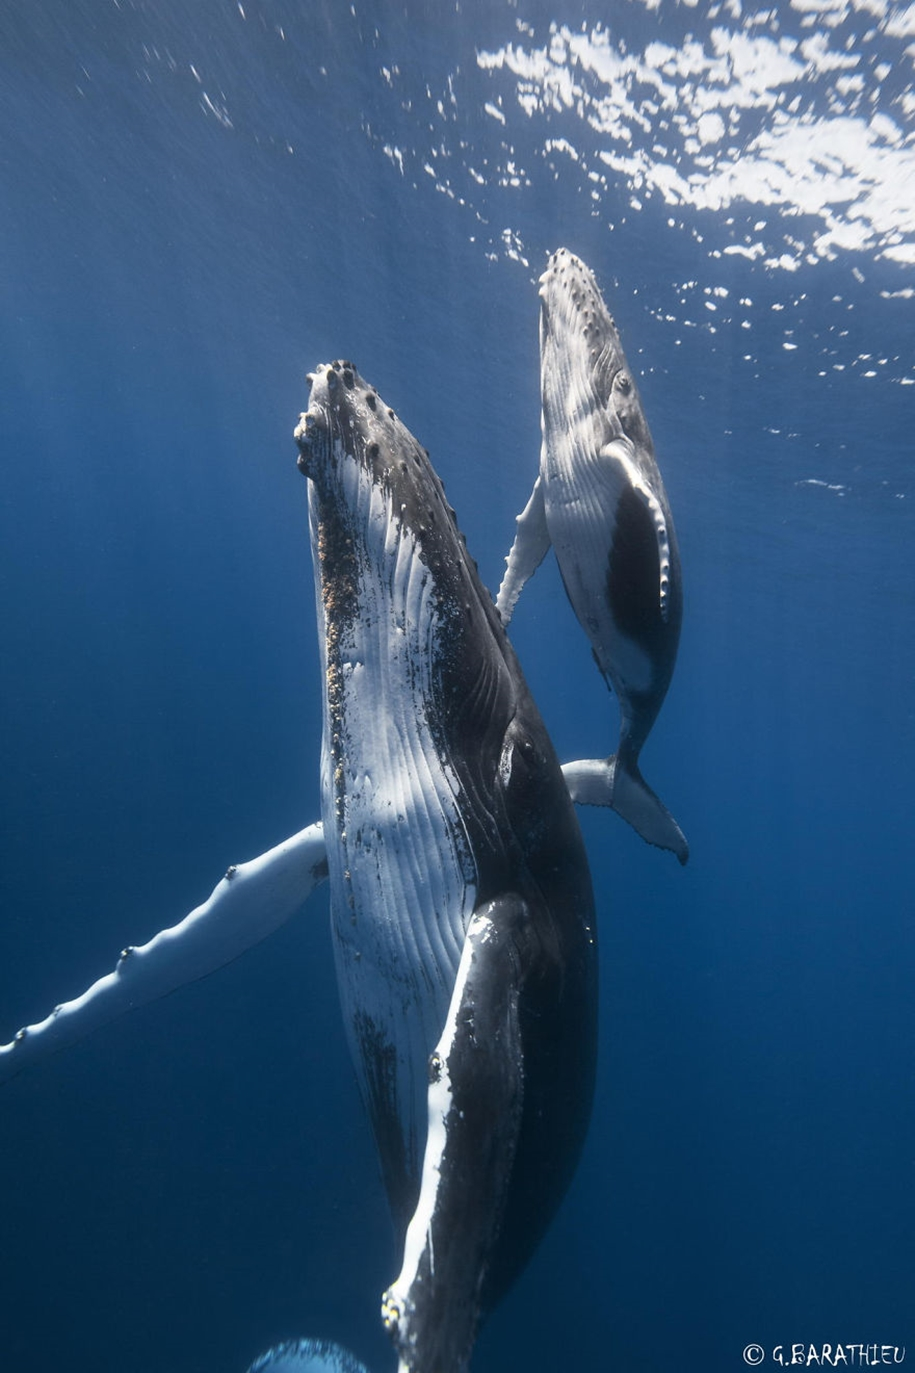 Majestic photos of whales 15